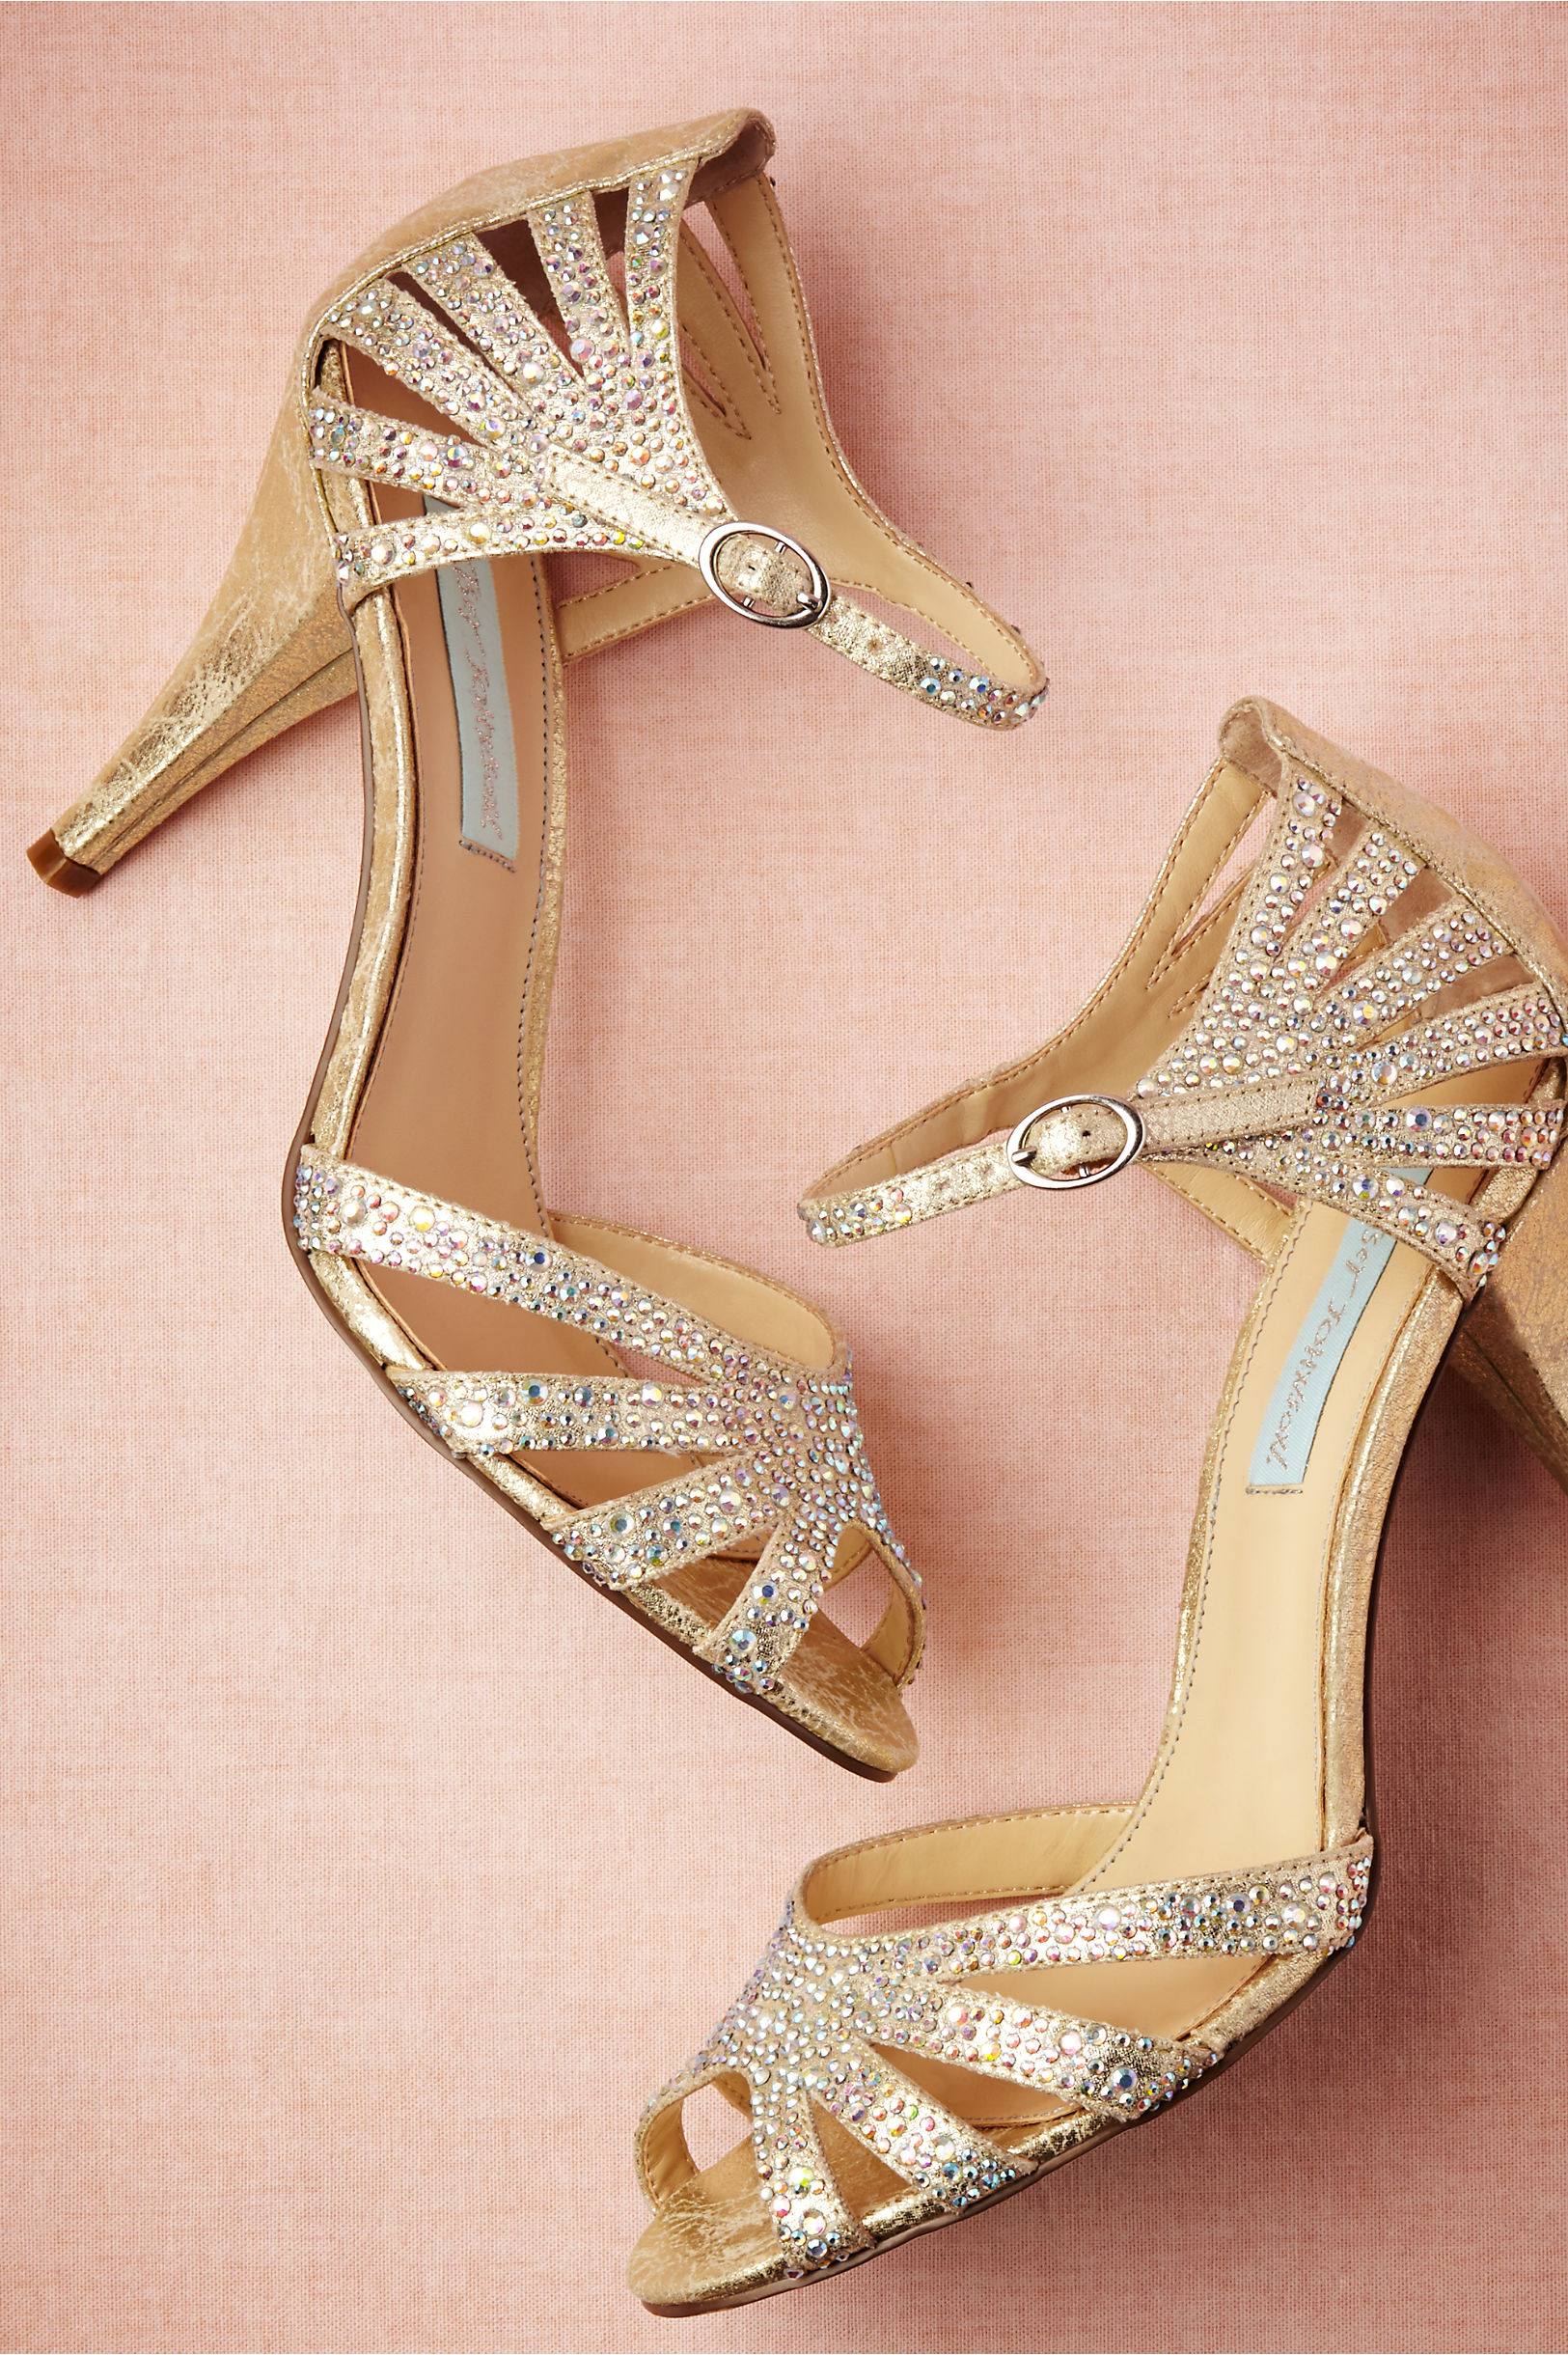 Champagne Sparkle Heels in Shoes & Accessories | BHLDN